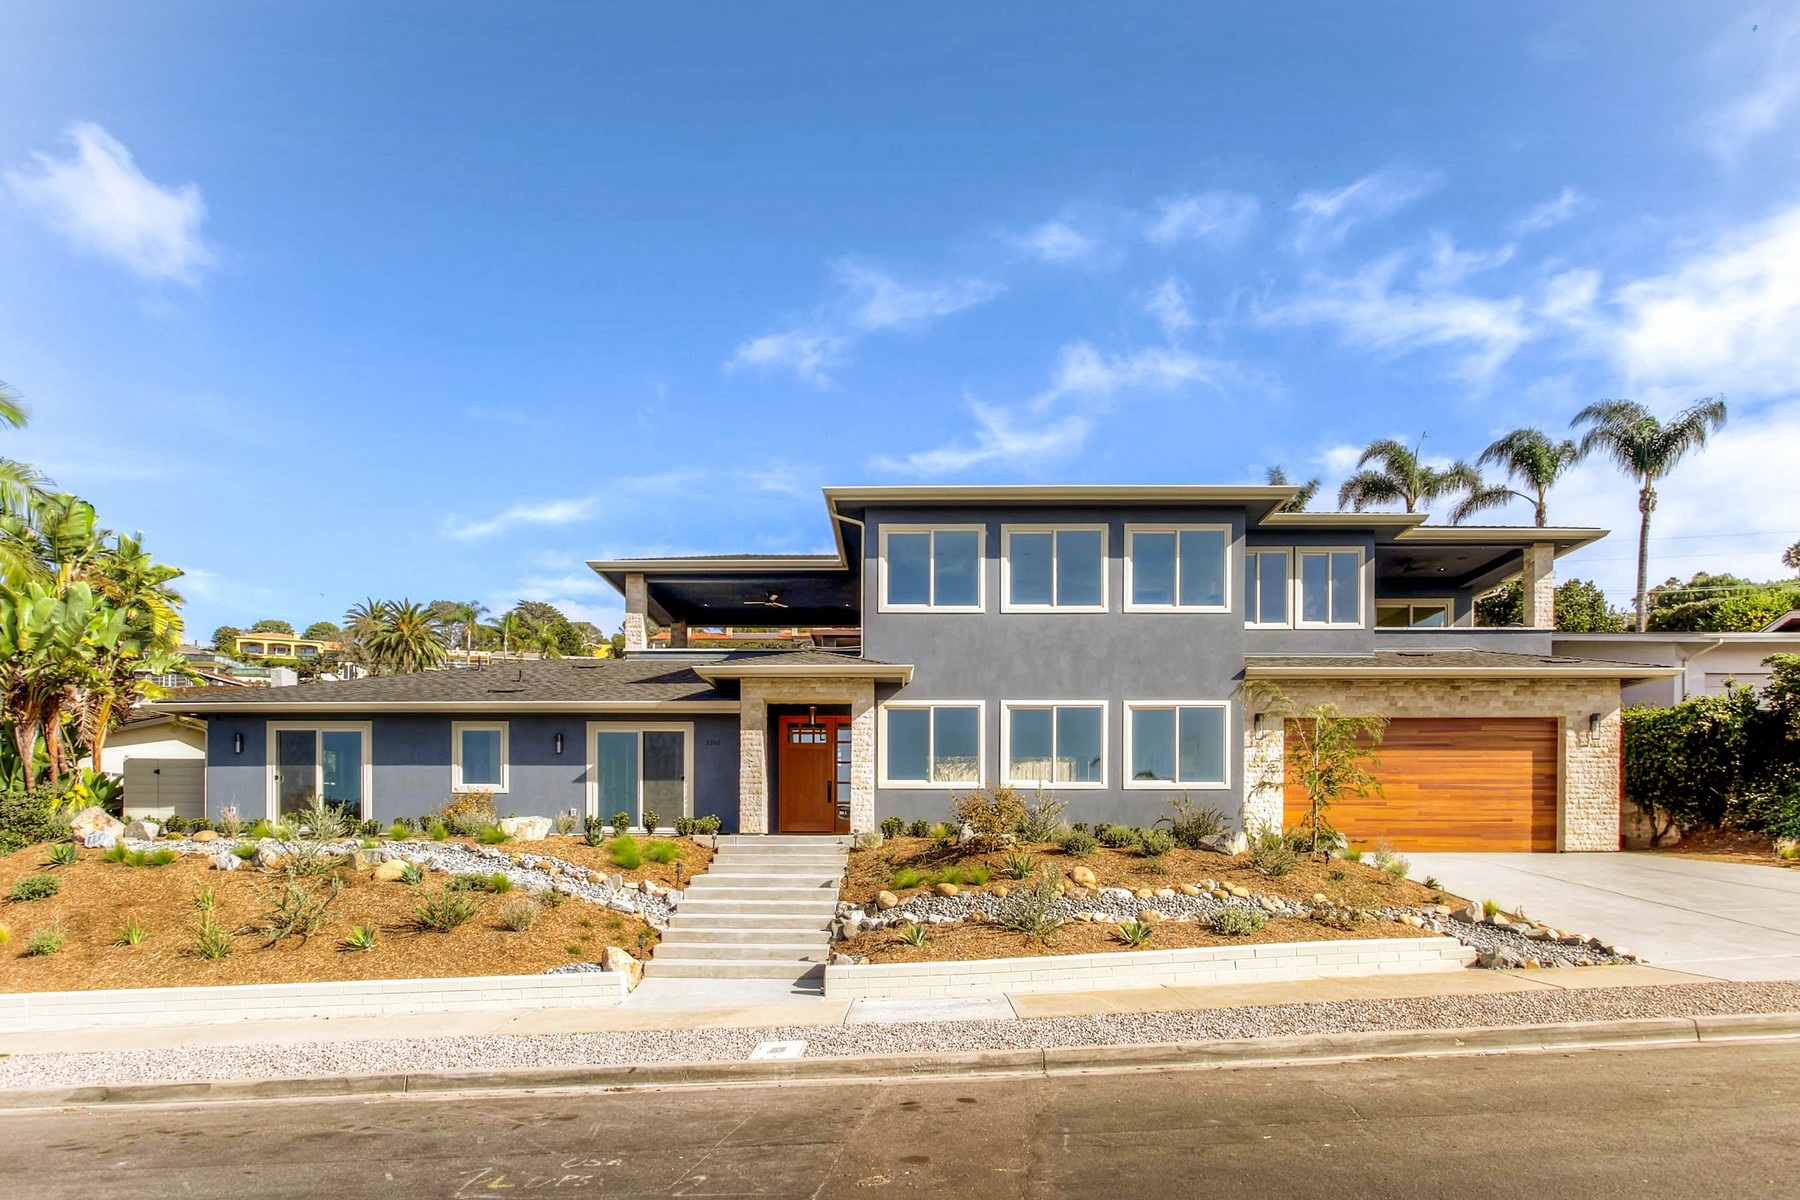 Additional photo for property listing at 6645 Avenida De Las Pescas  La Jolla, California 92037 Estados Unidos